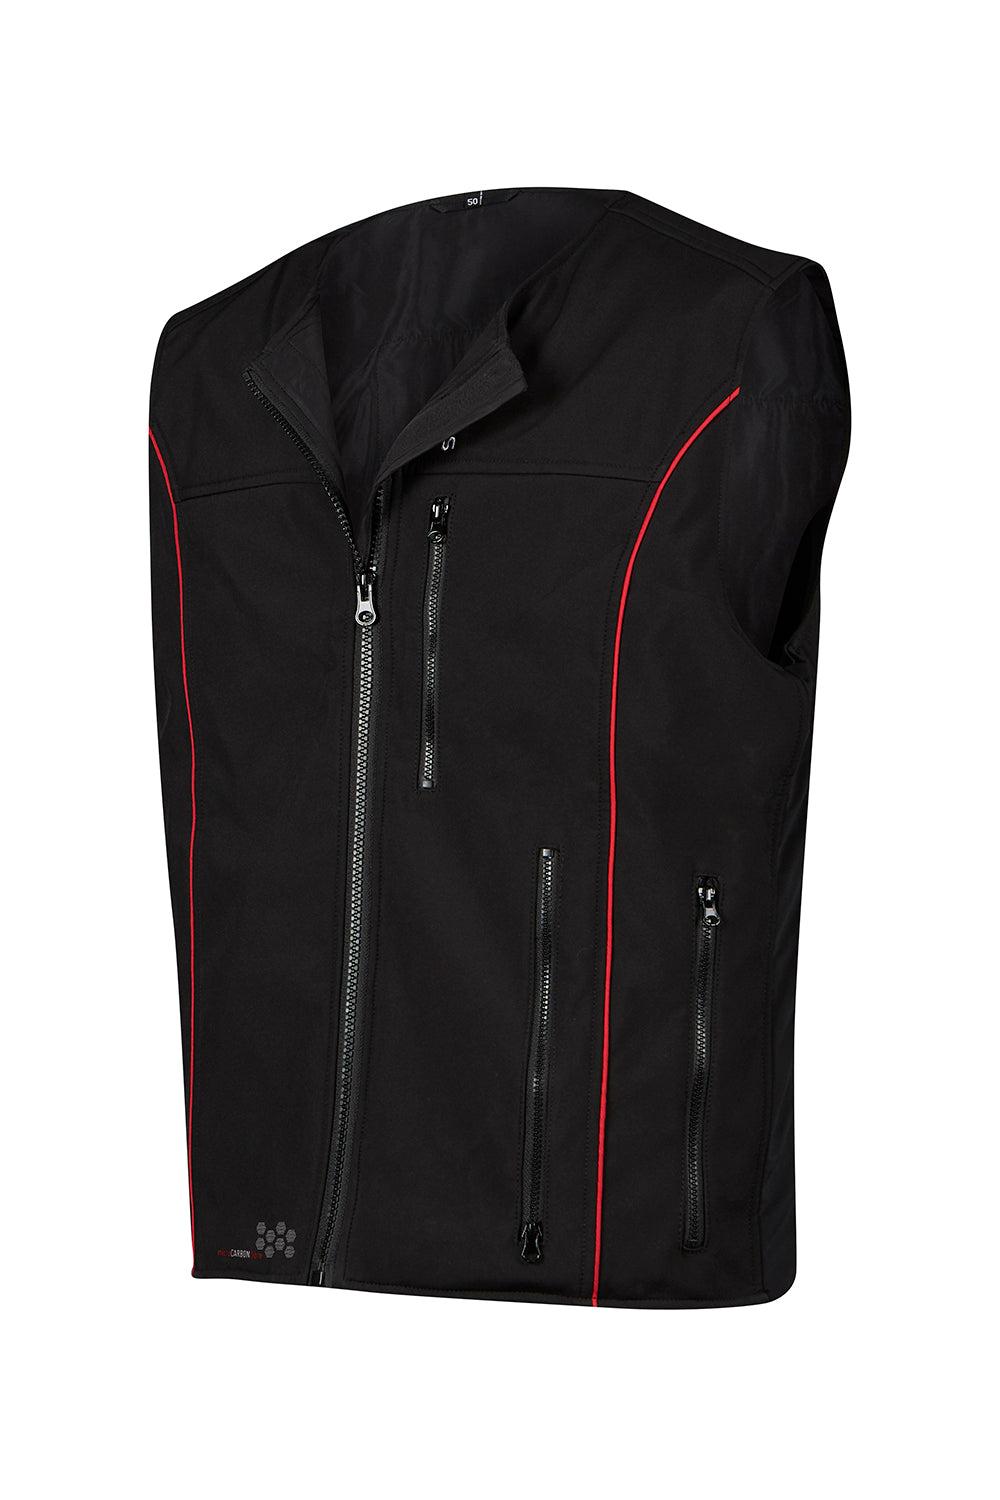 Keis heated vest bacl with red piping